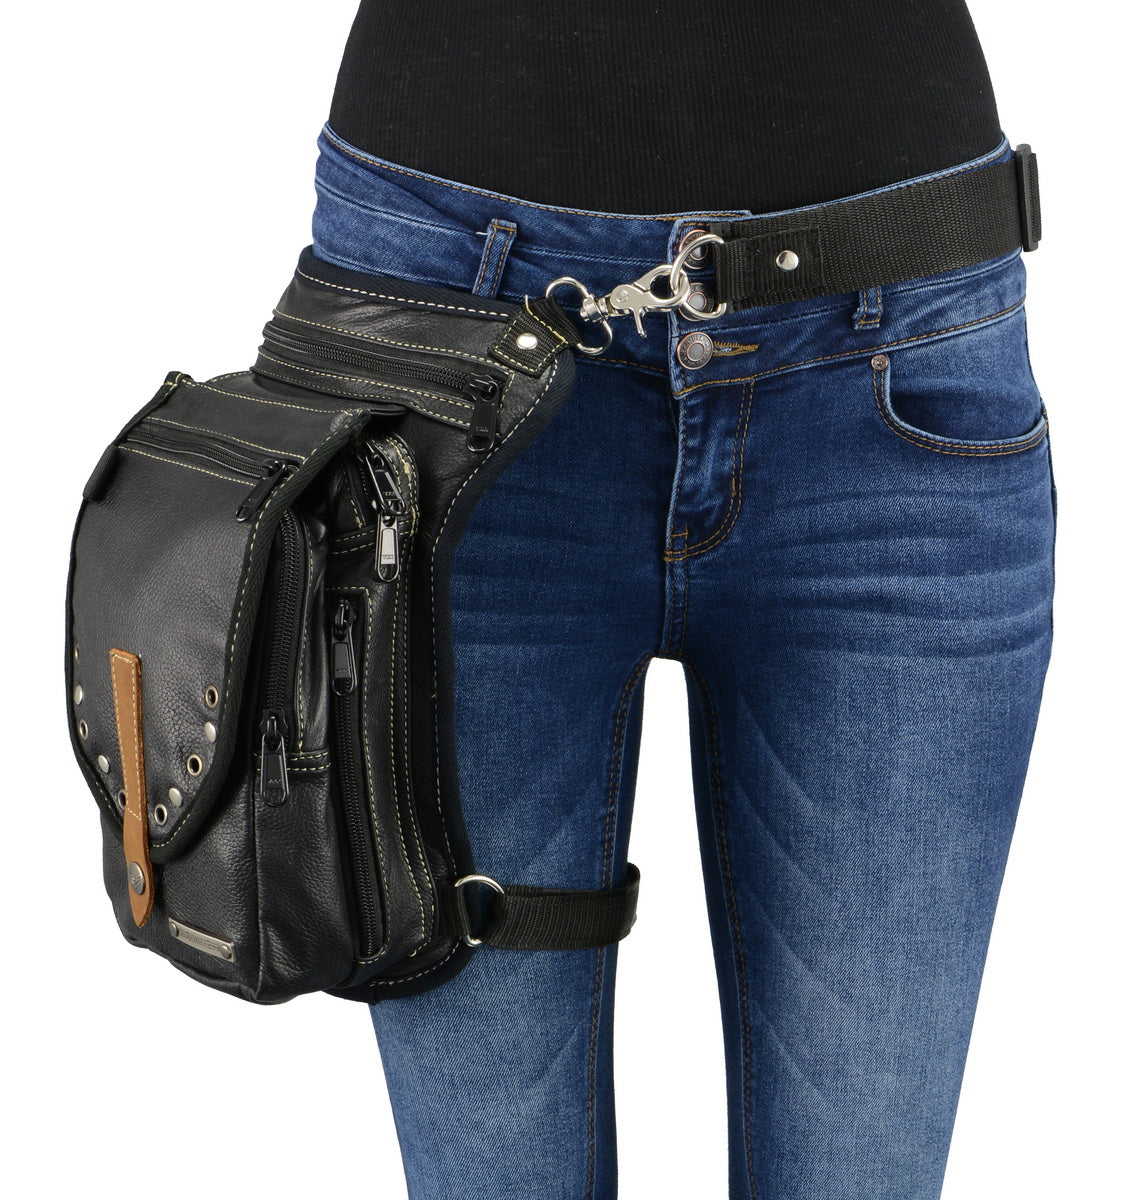 Milwaukee Leather MP8899 Conceal and Carry Black Leather Thigh Bag